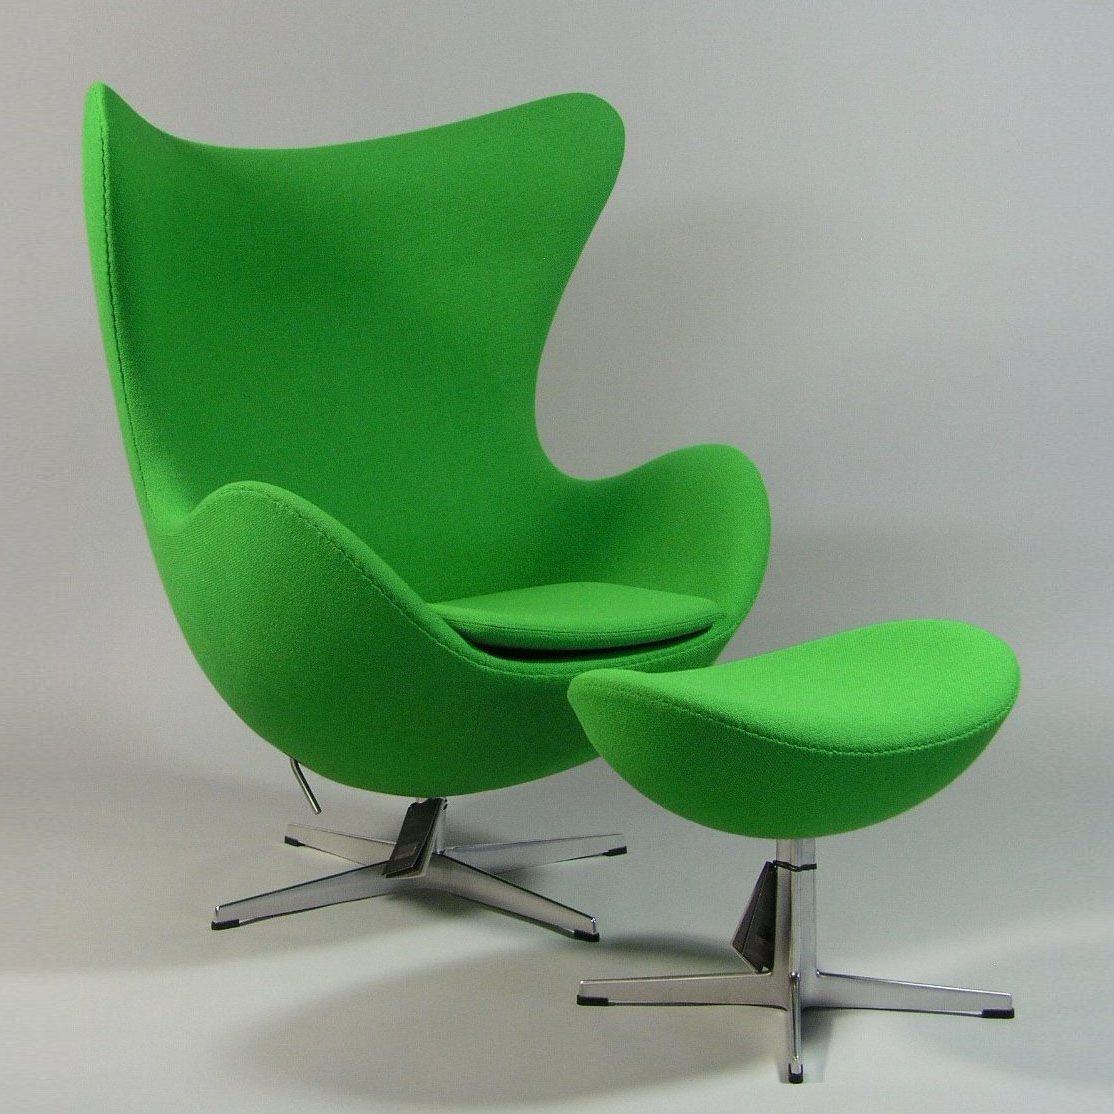 Arne Jacobsen Egg Chair Ebay Arne Jacobsen 39s Egg Chair Mid Century Modern Seating